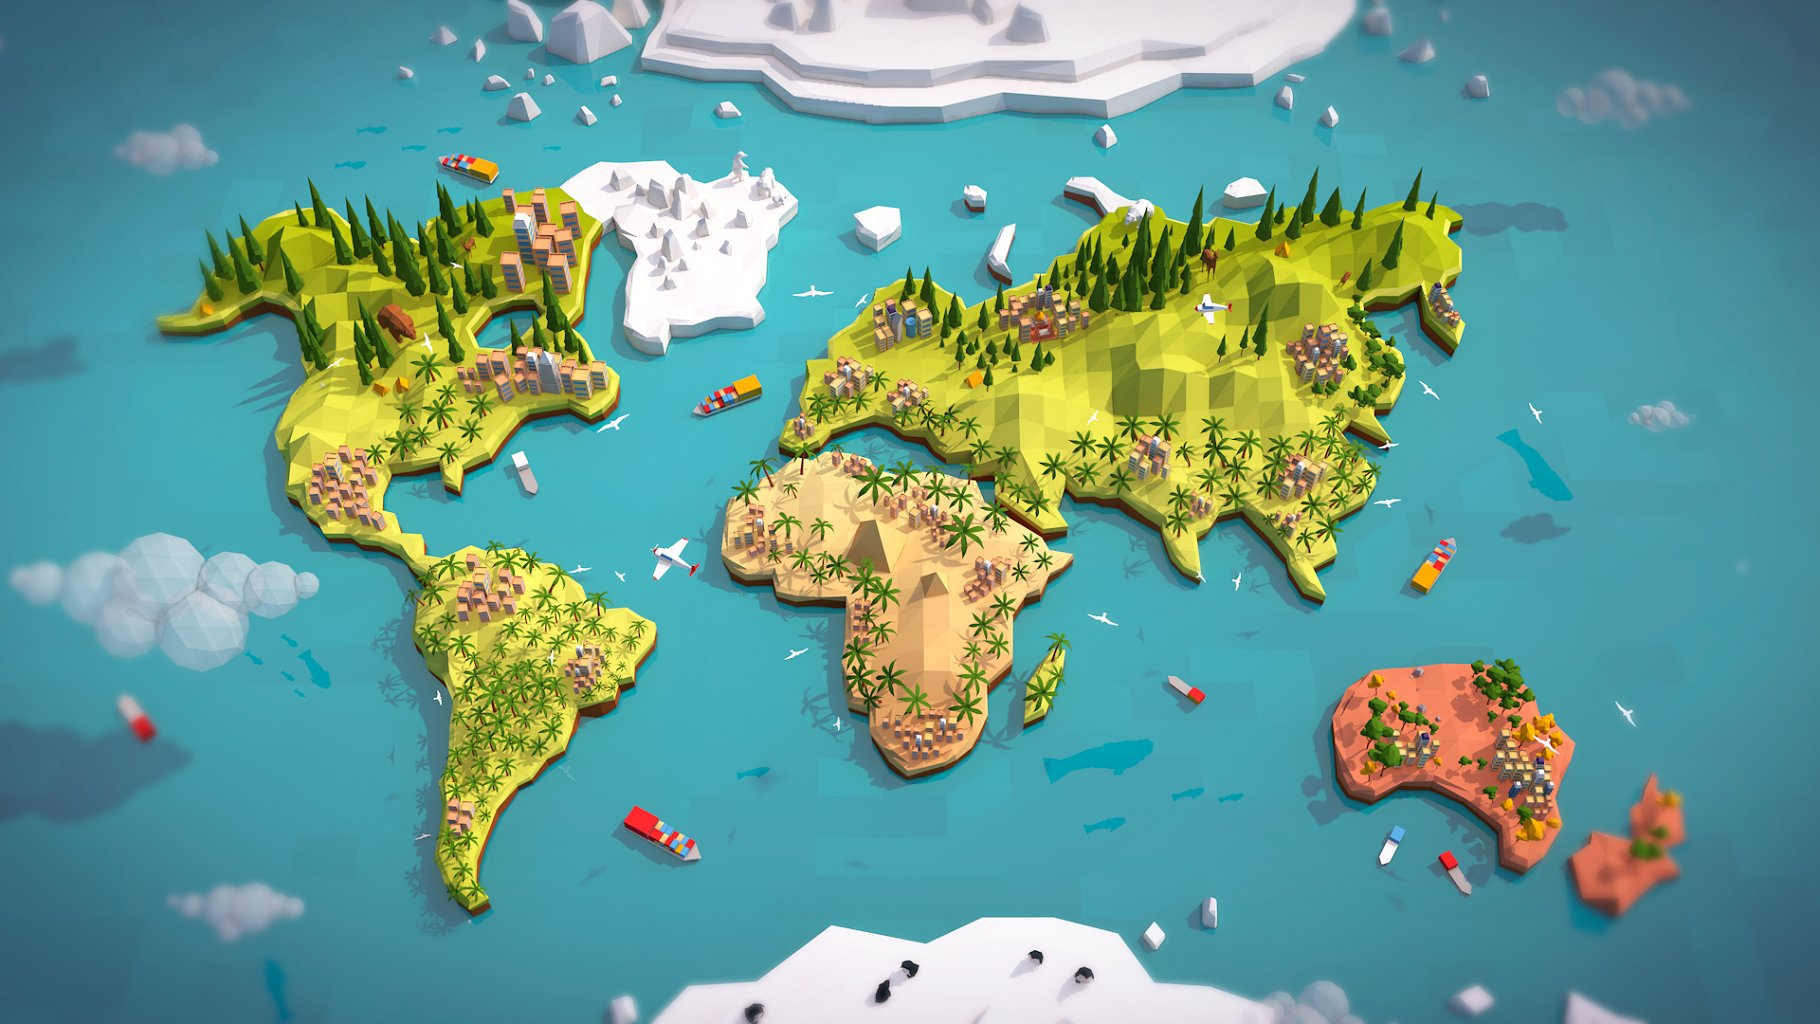 static/images/backgrounds/world-map-poly.jpg